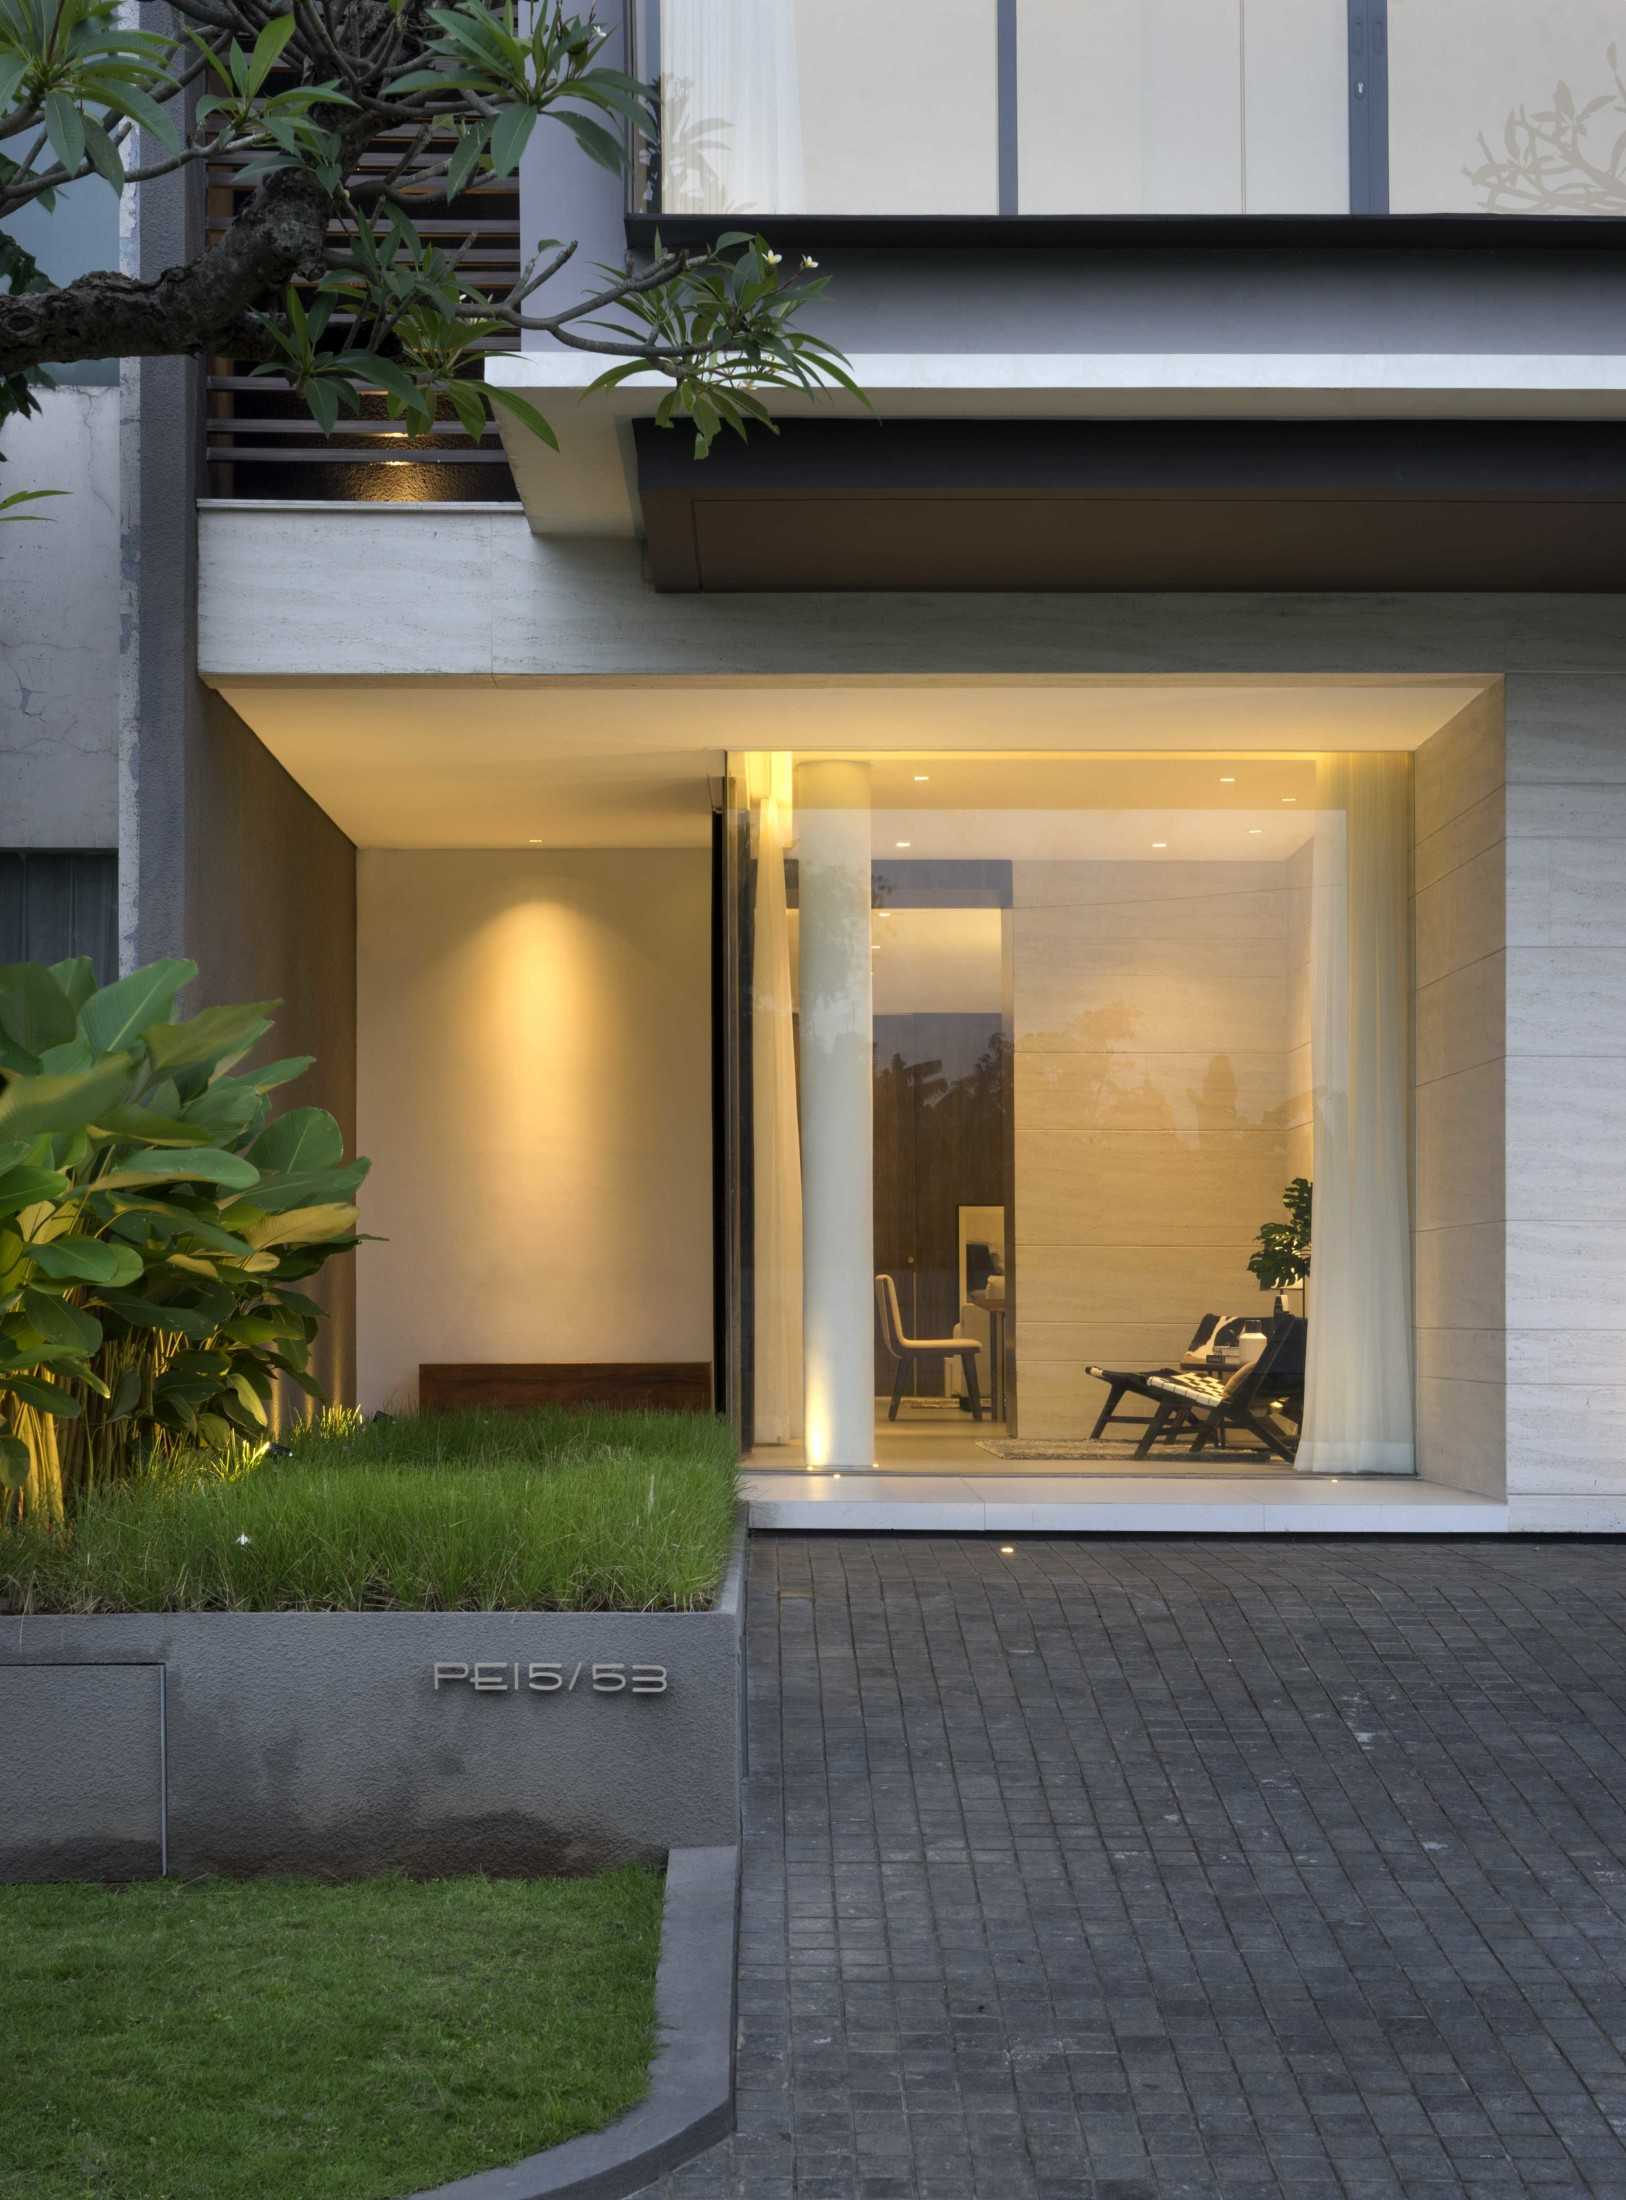 Simple Projects Architecture 'hhh' House Surabaya, Kota Sby, Jawa Timur, Indonesia  Simple-Projects-Architecture-Hhh-House  75047